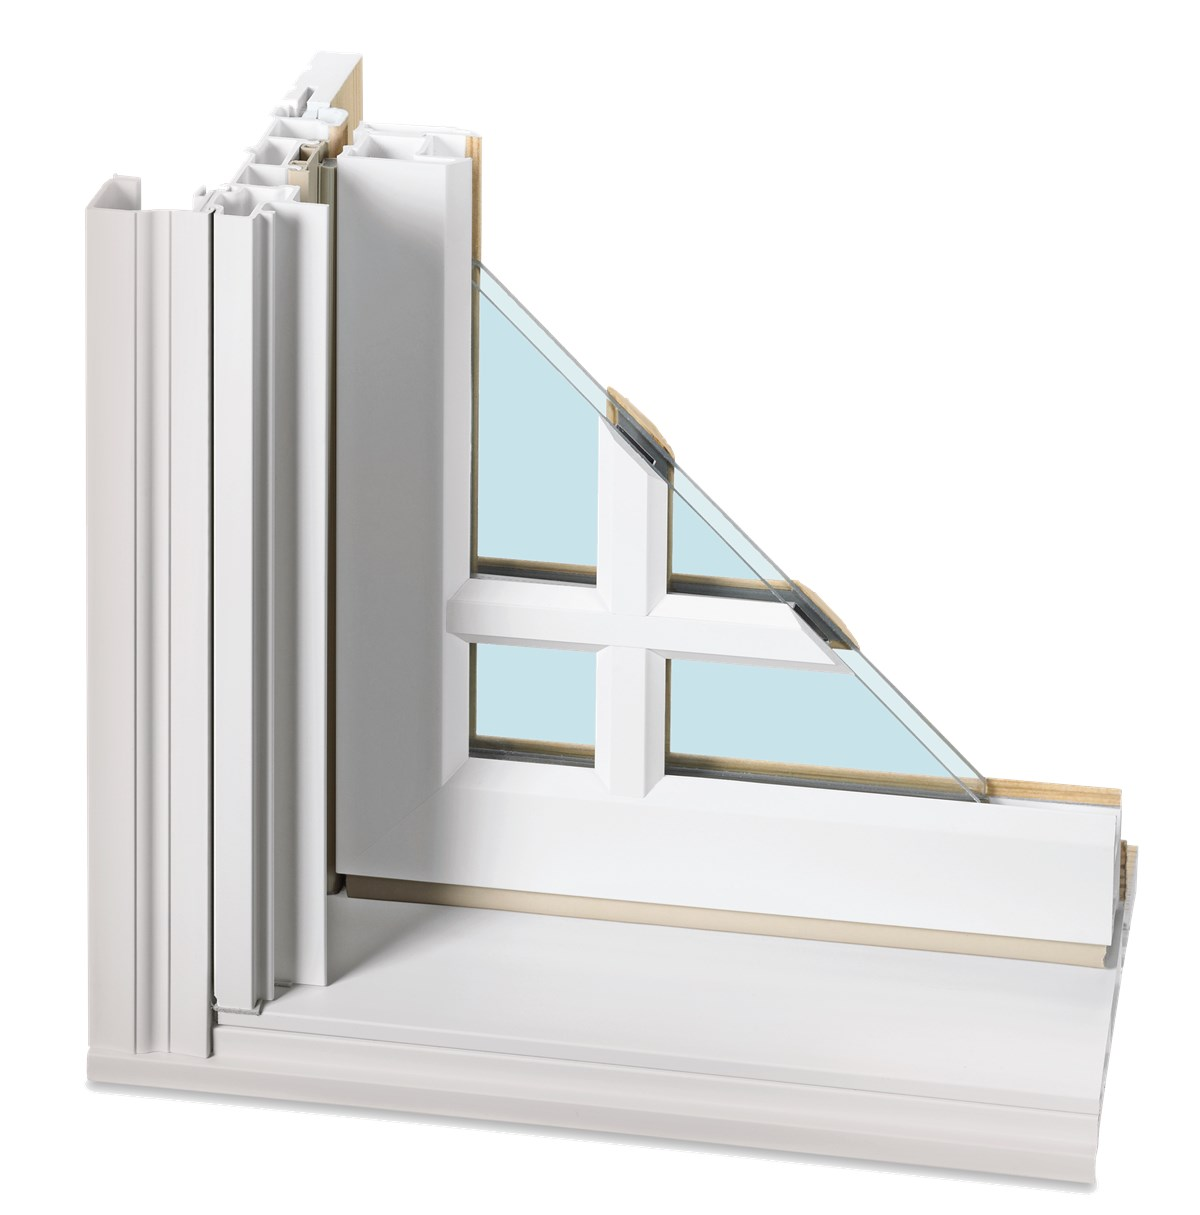 New england energy efficient windows boston energy for Efficient windows